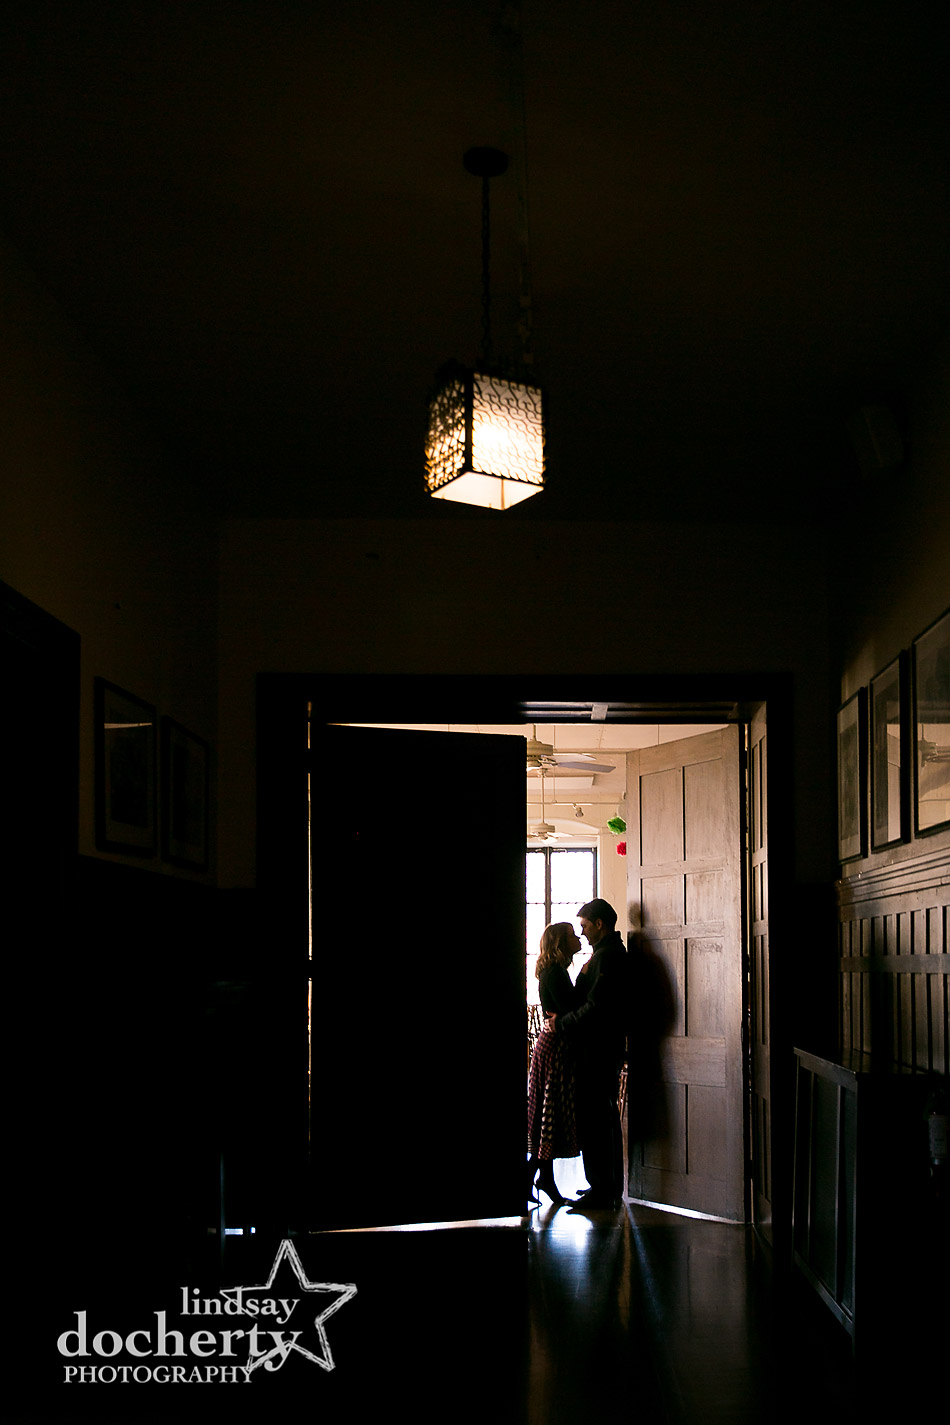 silhouette of couple in door frame at Baldwin School cafeteria